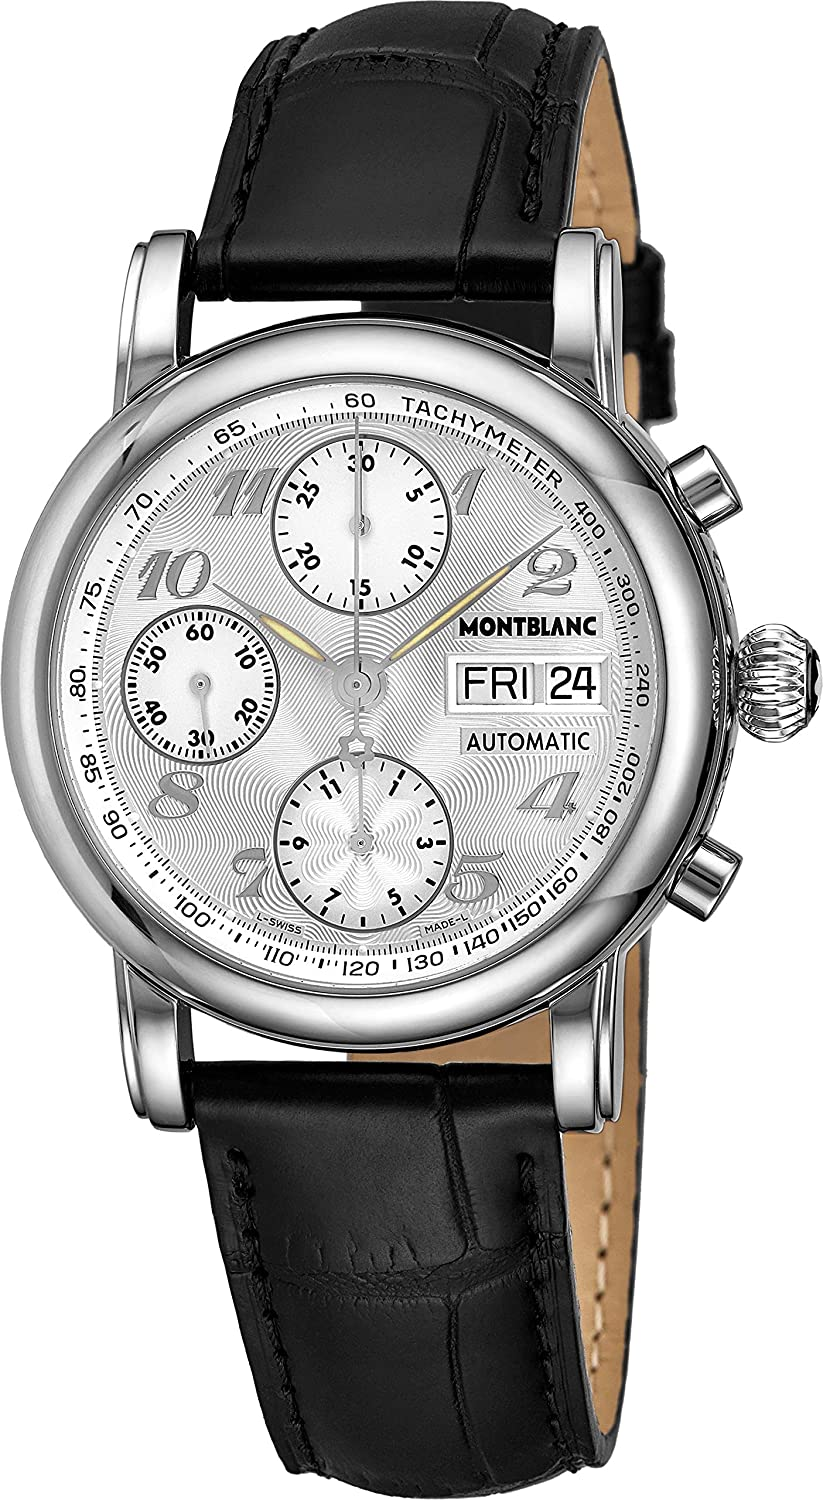 50a067ad23a Amazon.com: Montblanc Star Chronograph Automatic Mens Watch 8452: Star:  Watches